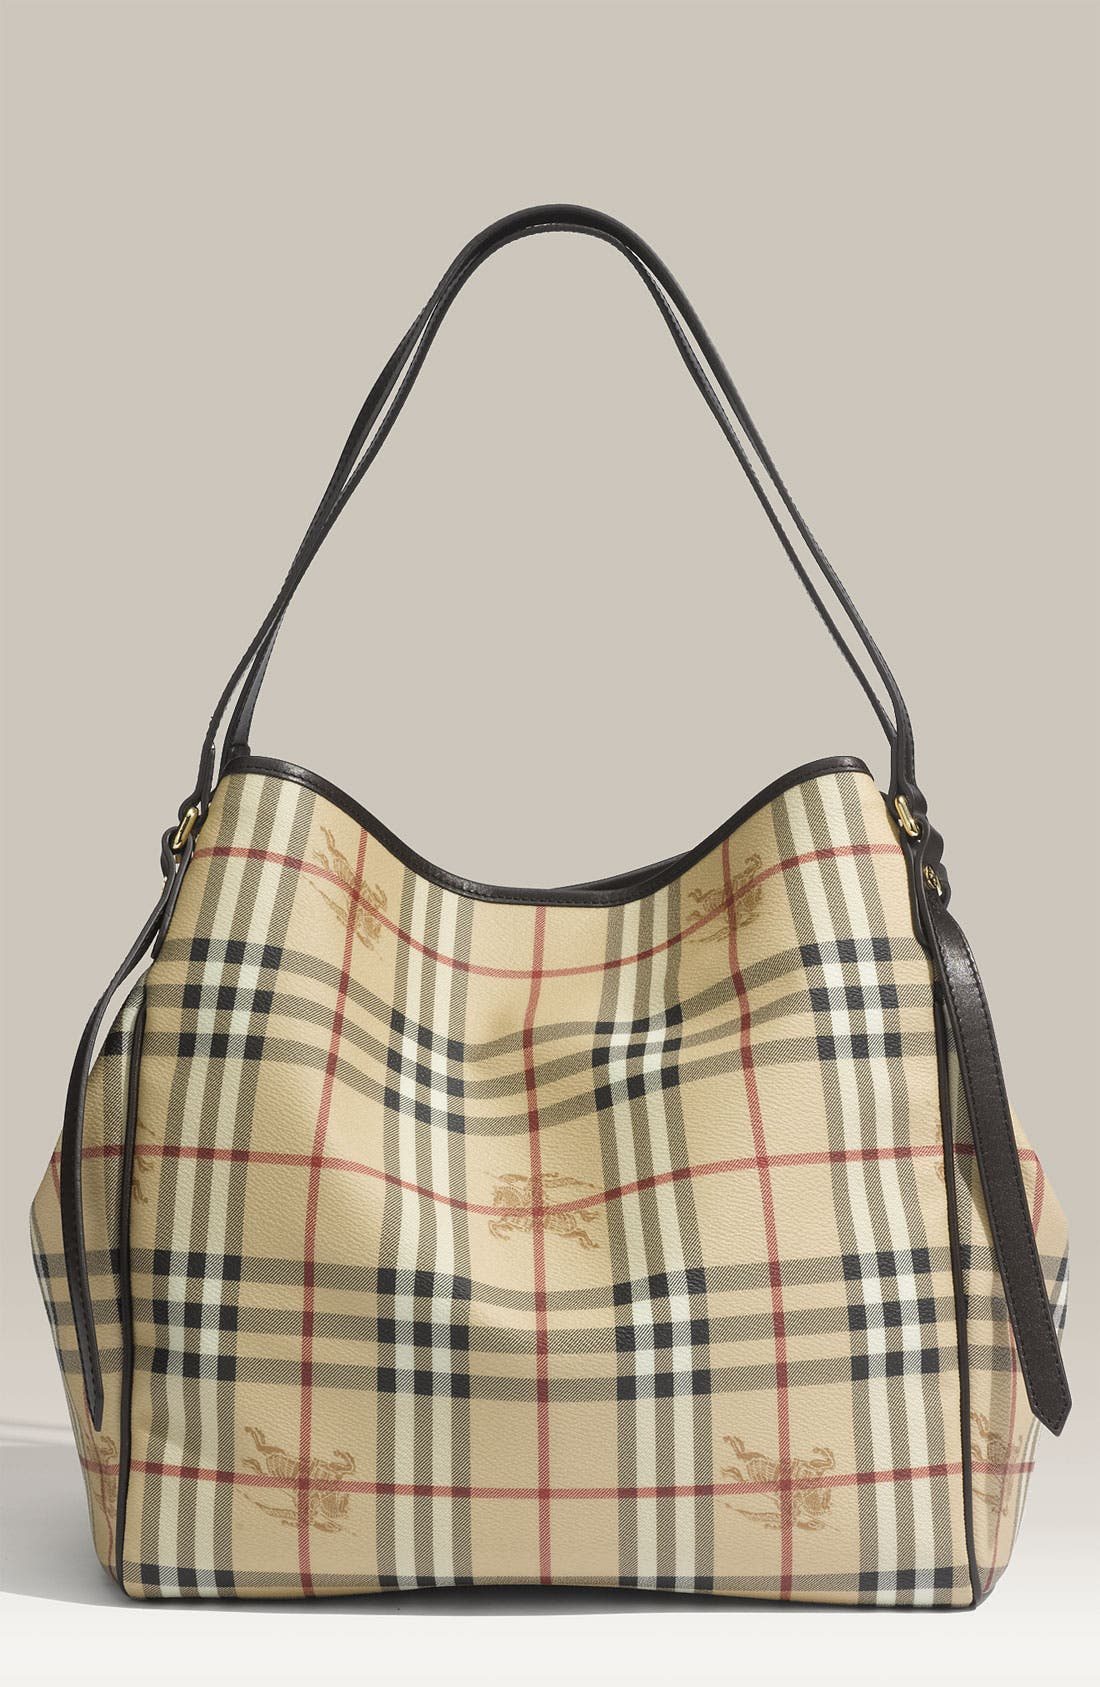 Alternate Image 1 Selected - Burberry 'Medium Haymarket Check' Shoulder Bag